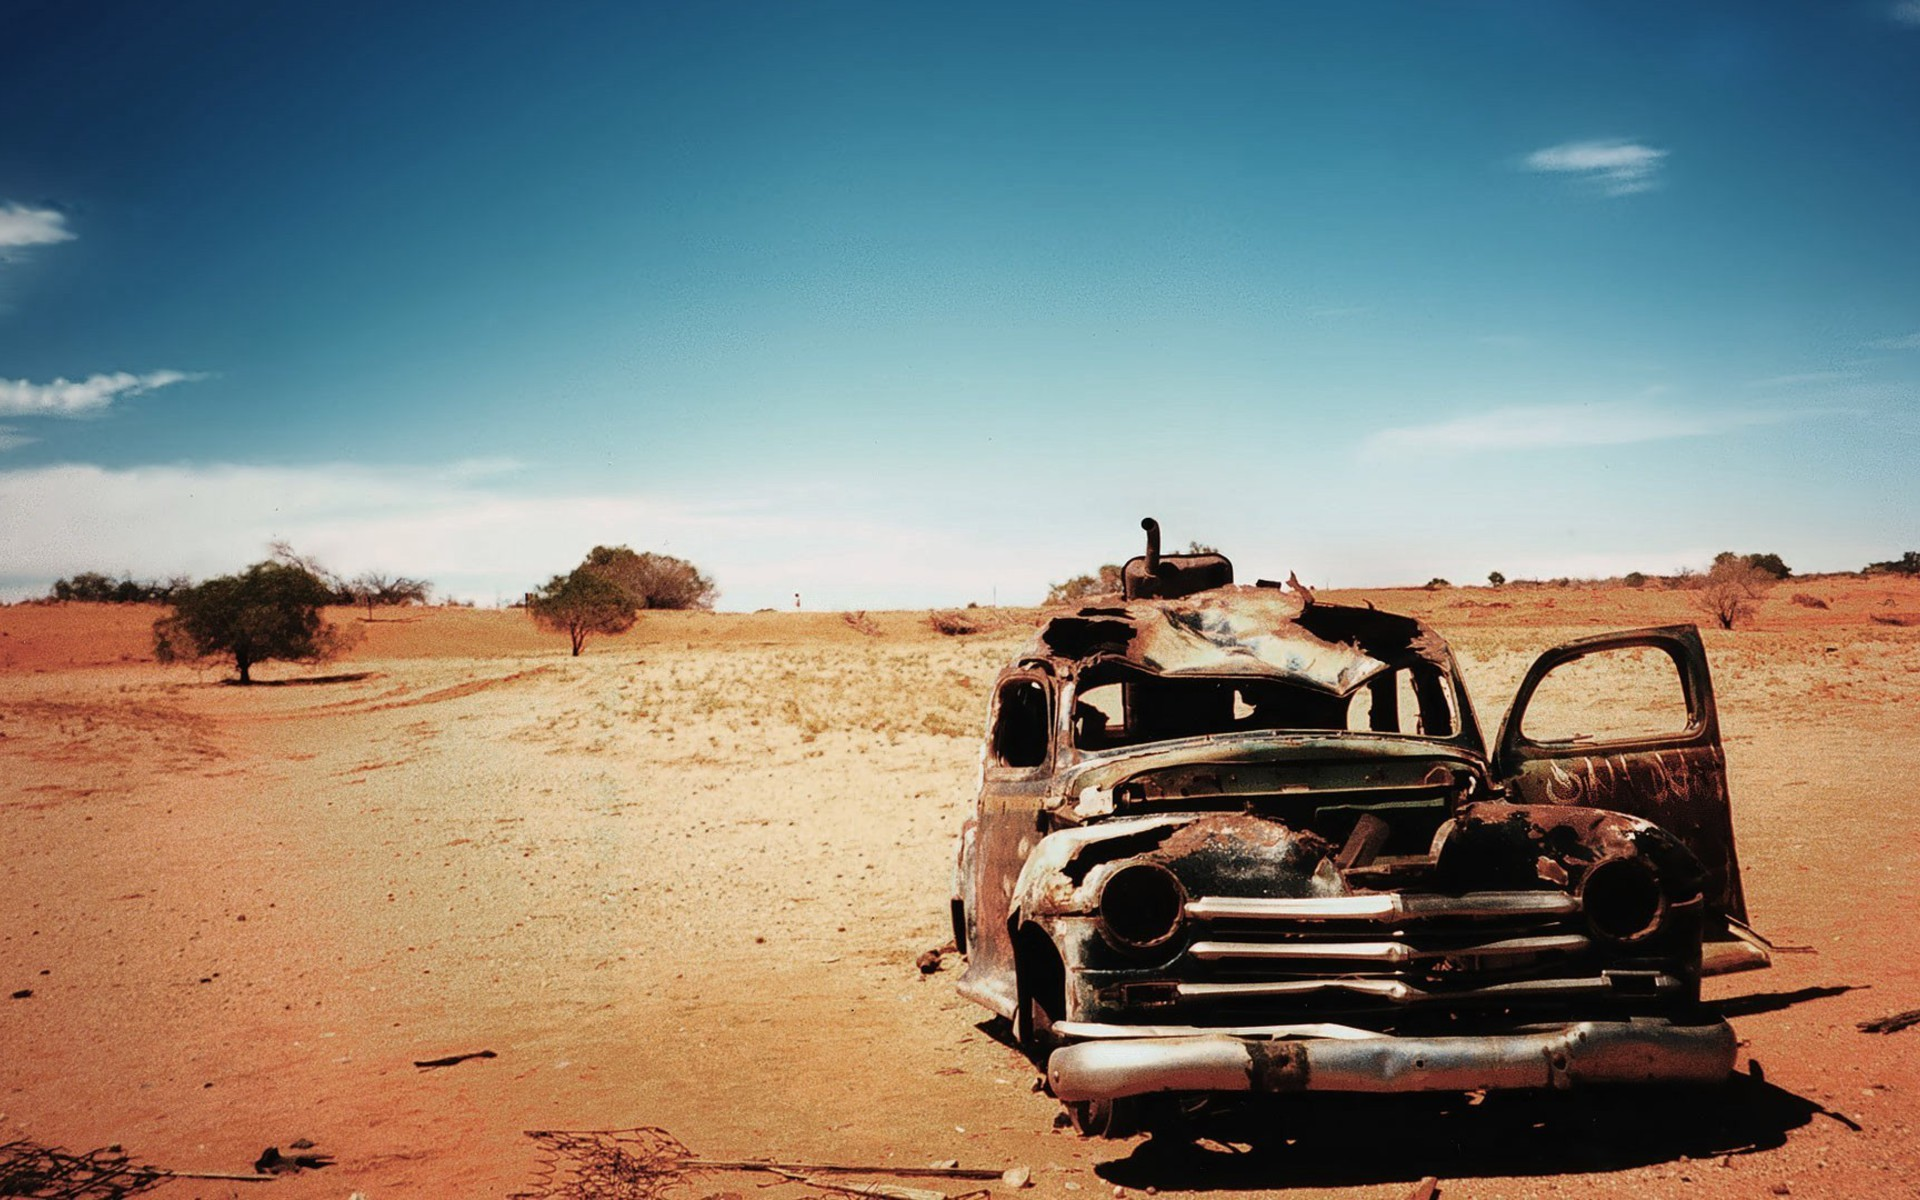 Cars deserts old wrecks wallpaper | AllWallpaper.in #3910 | PC | en